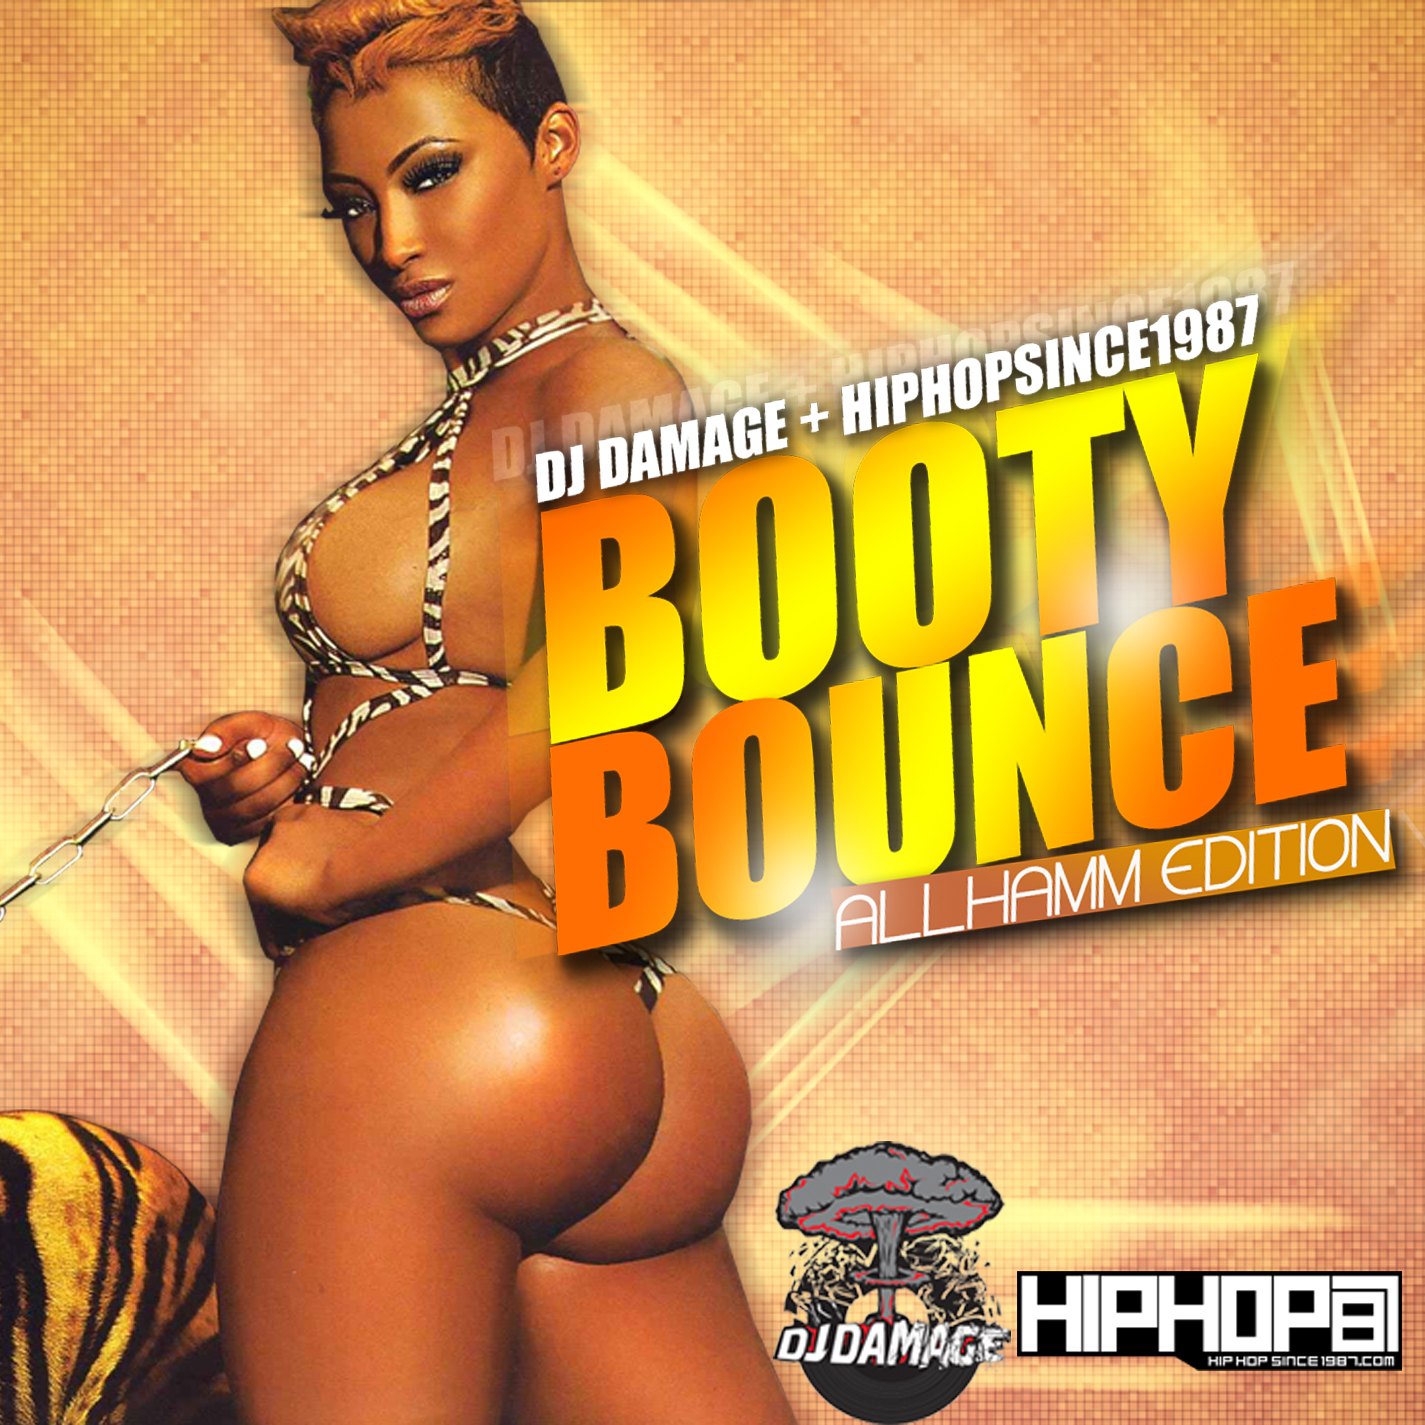 dj-damage-hhs1987-booty-bounce-hamm-edition-mixtape-HHS1987-2013 DJ Damage x HHS1987 - Booty Bounce (All Hamm Edition) (Mixtape)